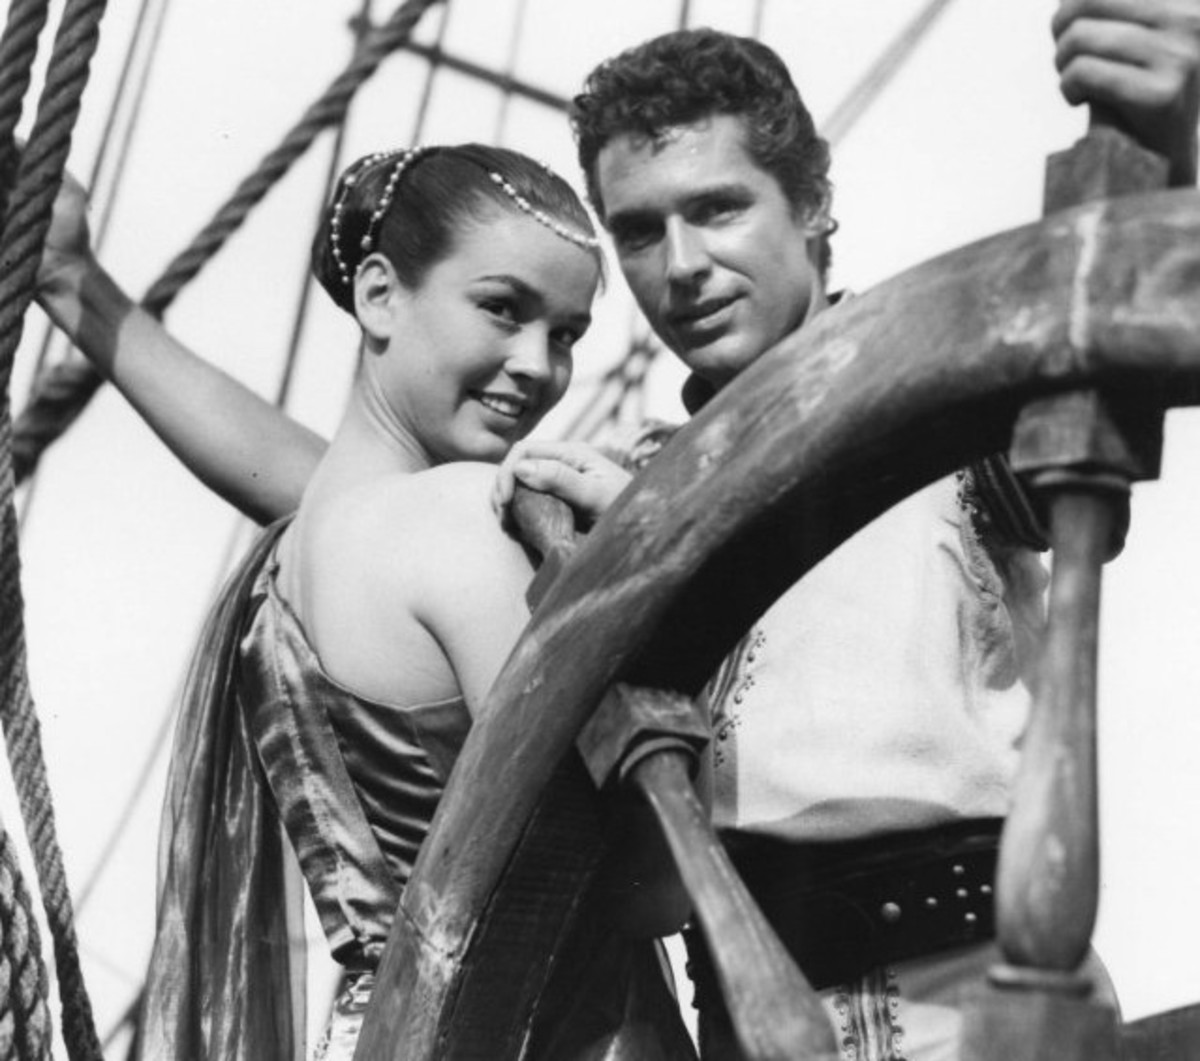 Kathryn Grant and Kerwin Mathews in The 7th Voyage of Sinbad (1958) Publicity Still